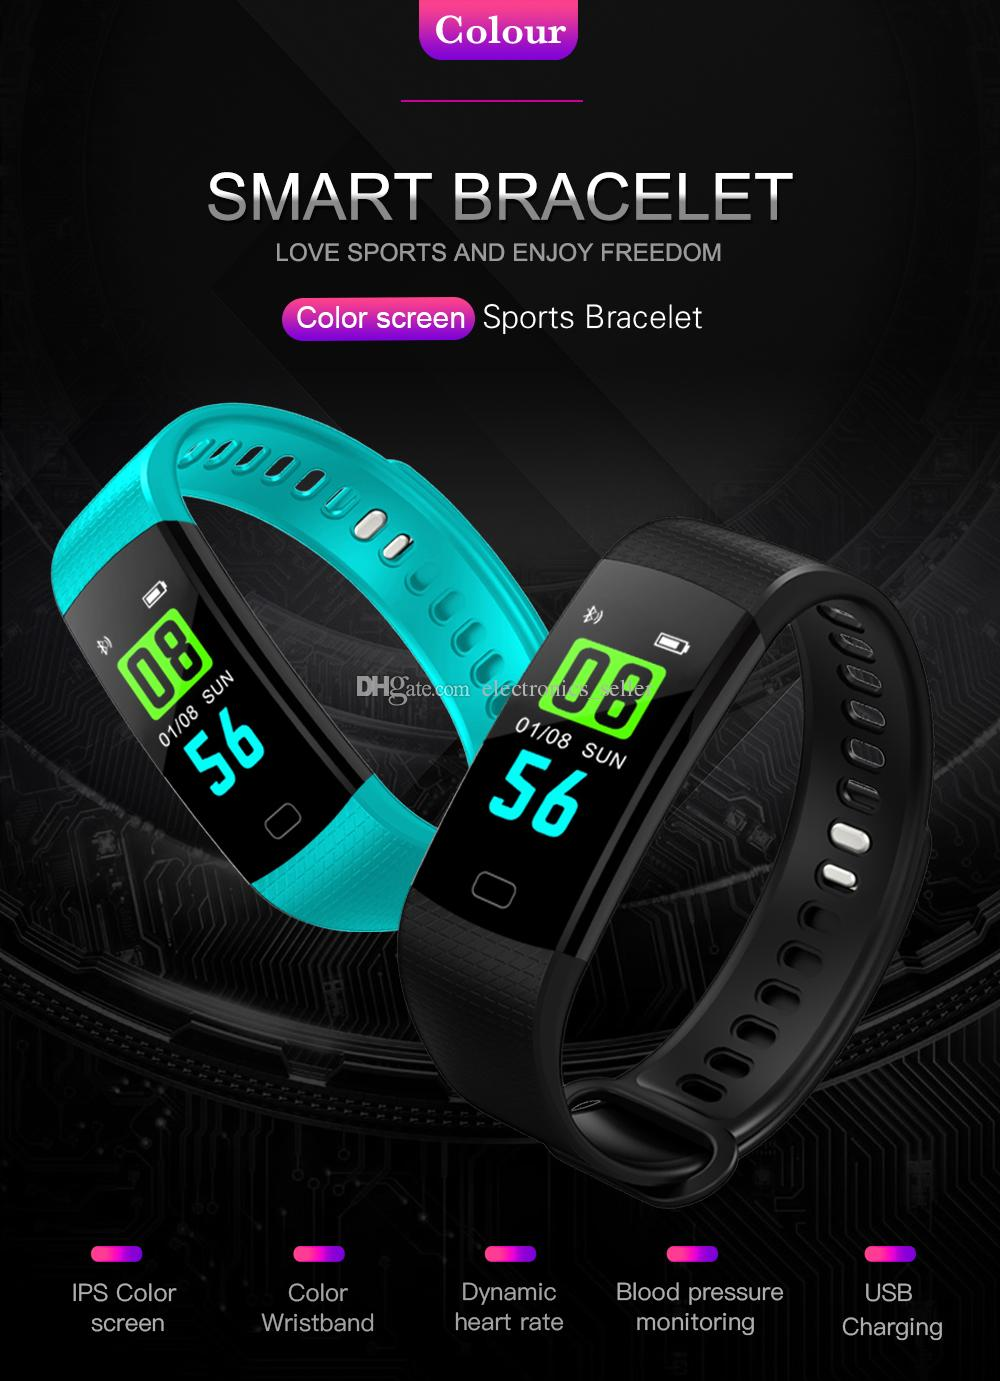 Y5 Smart Bracelet Wristband Fitness Tracker Color Screen Heart Rate Sleep Pedometer Sport Waterproof Activity Tracker for iPhone Samsung